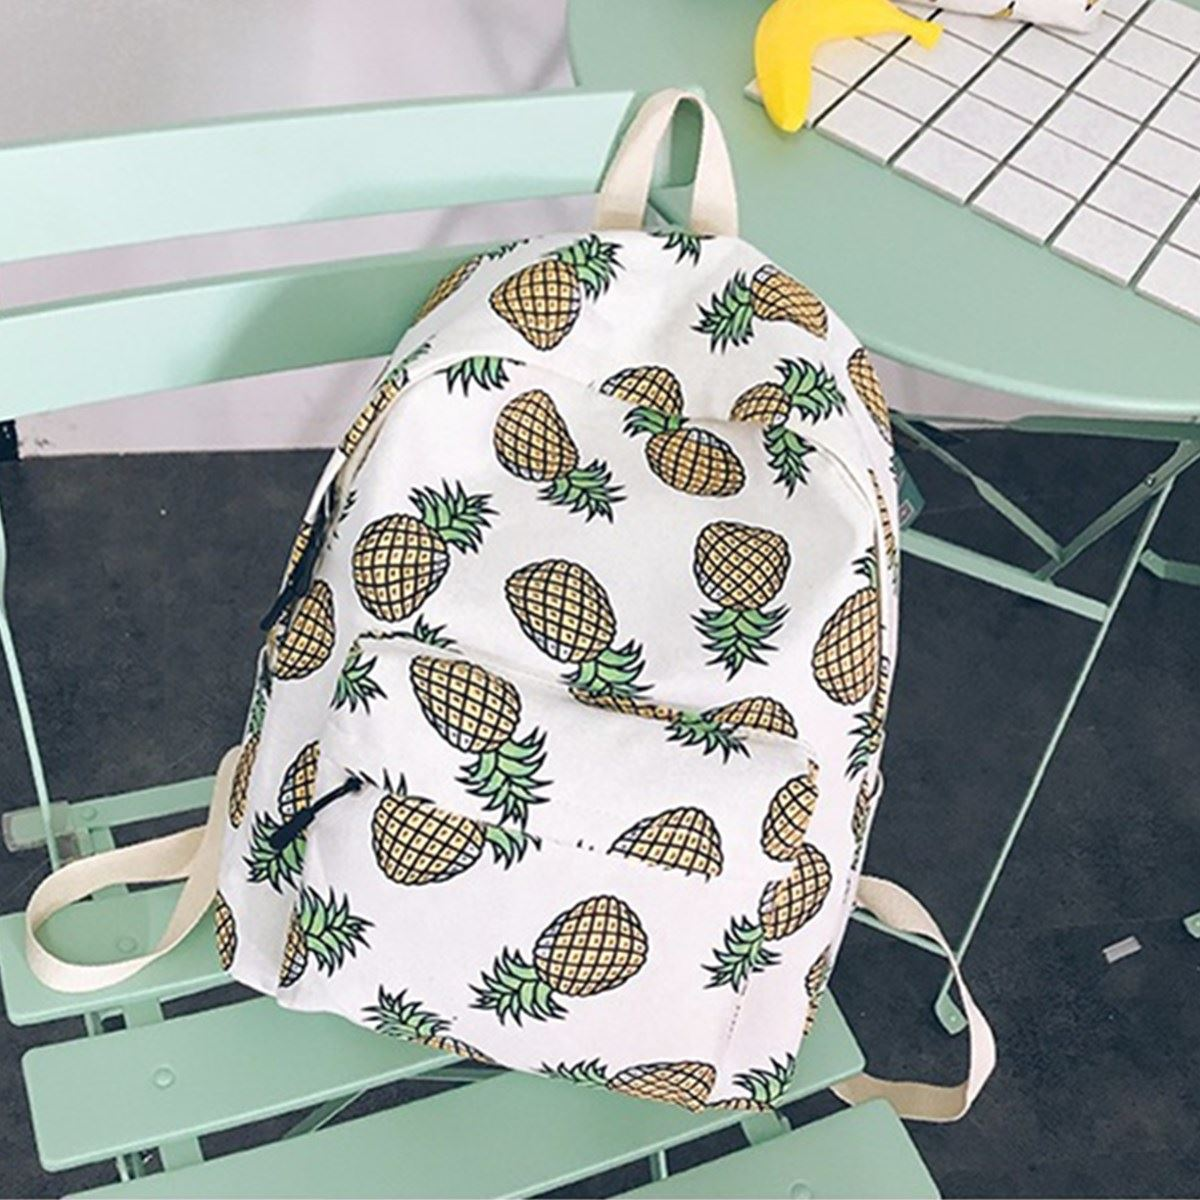 c941deb2e55b US $27.41 |AEQUEEN Cute Fruit Backpack Pineapple Print Schoolbag Teenage  Travel Mochila Daypack Girls Canvas Printing Backpacks-in Backpacks from ...